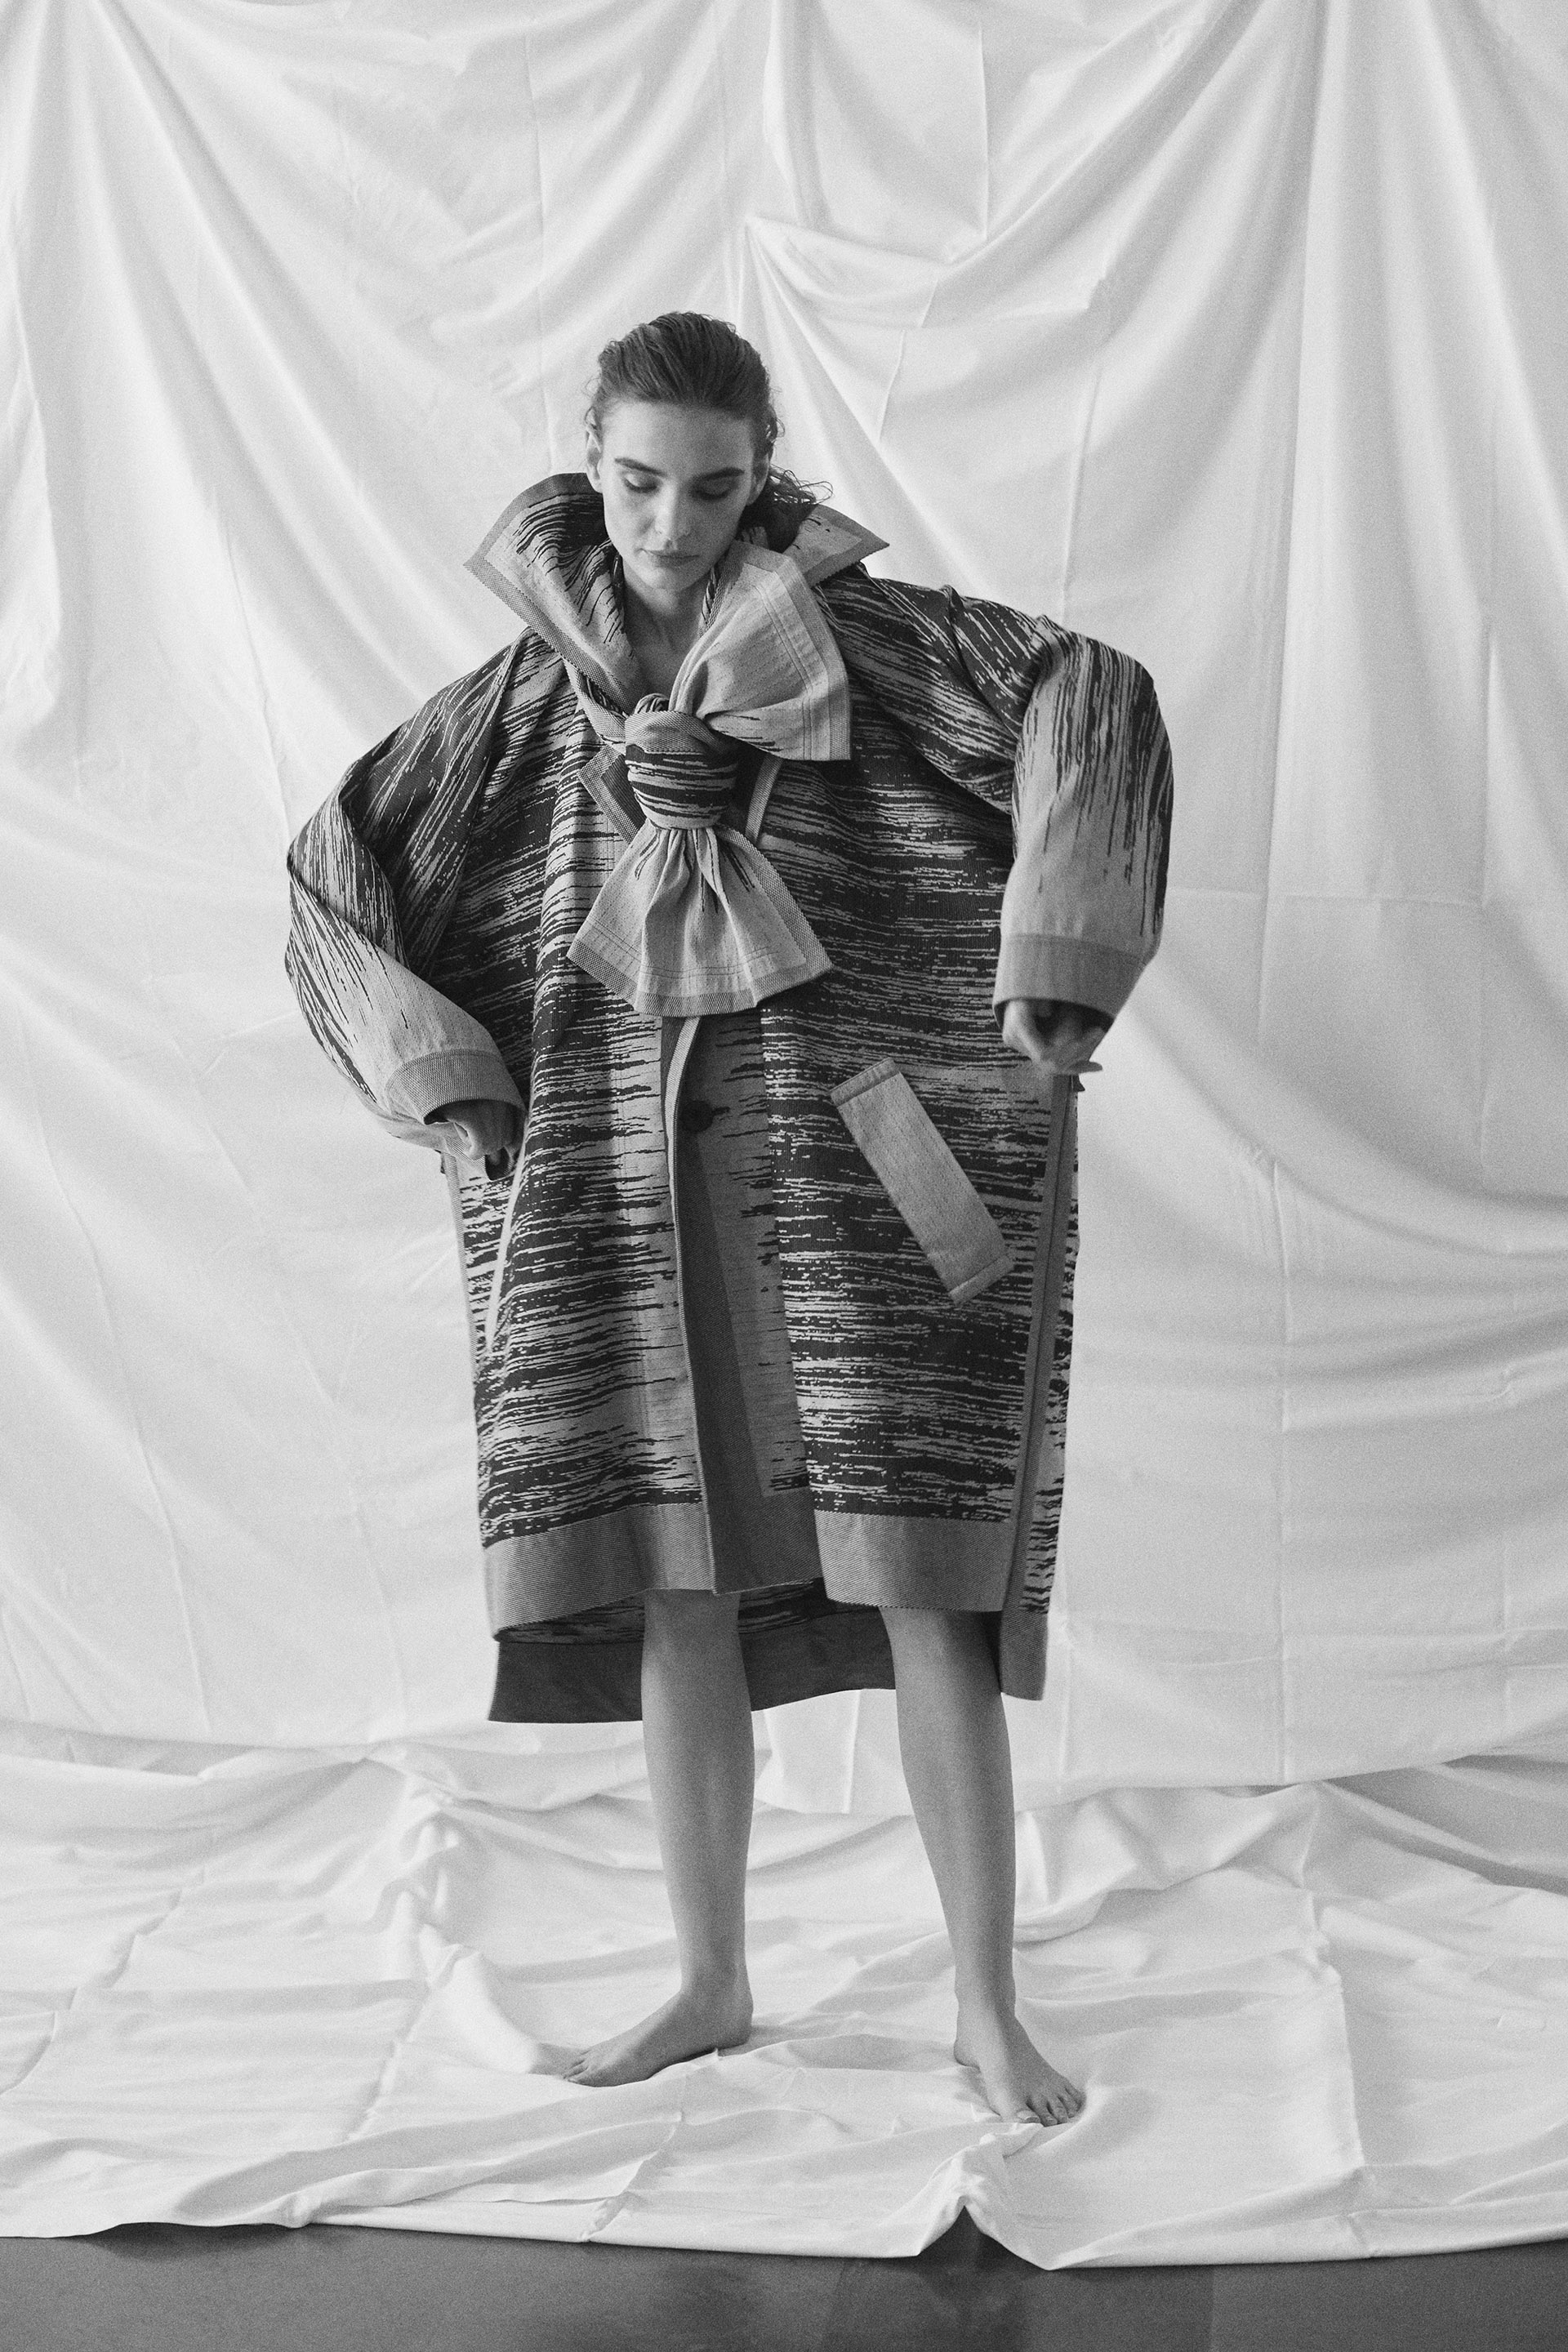 R E V S In collection by Eeva Rinne feat. Issey Miyake SS19